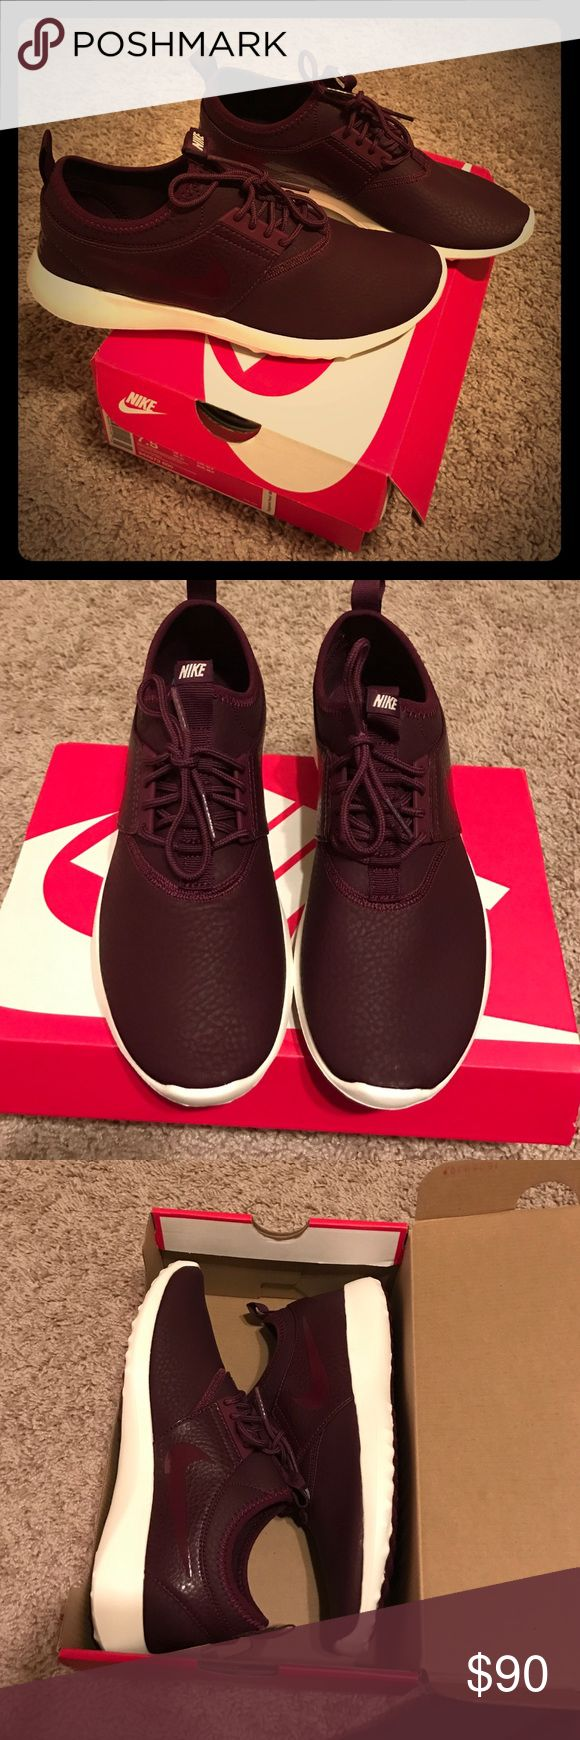 RESERVED/ ON HOLD PRICE IS FIRM...No trades. These are so gorgeous! I have so many pairs of Nike juvenates. Most comfortable sneakers I've ever owned. Great for everyday wear. These have a synthetic leather material. Very lightweight. Nike Shoes Sneakers